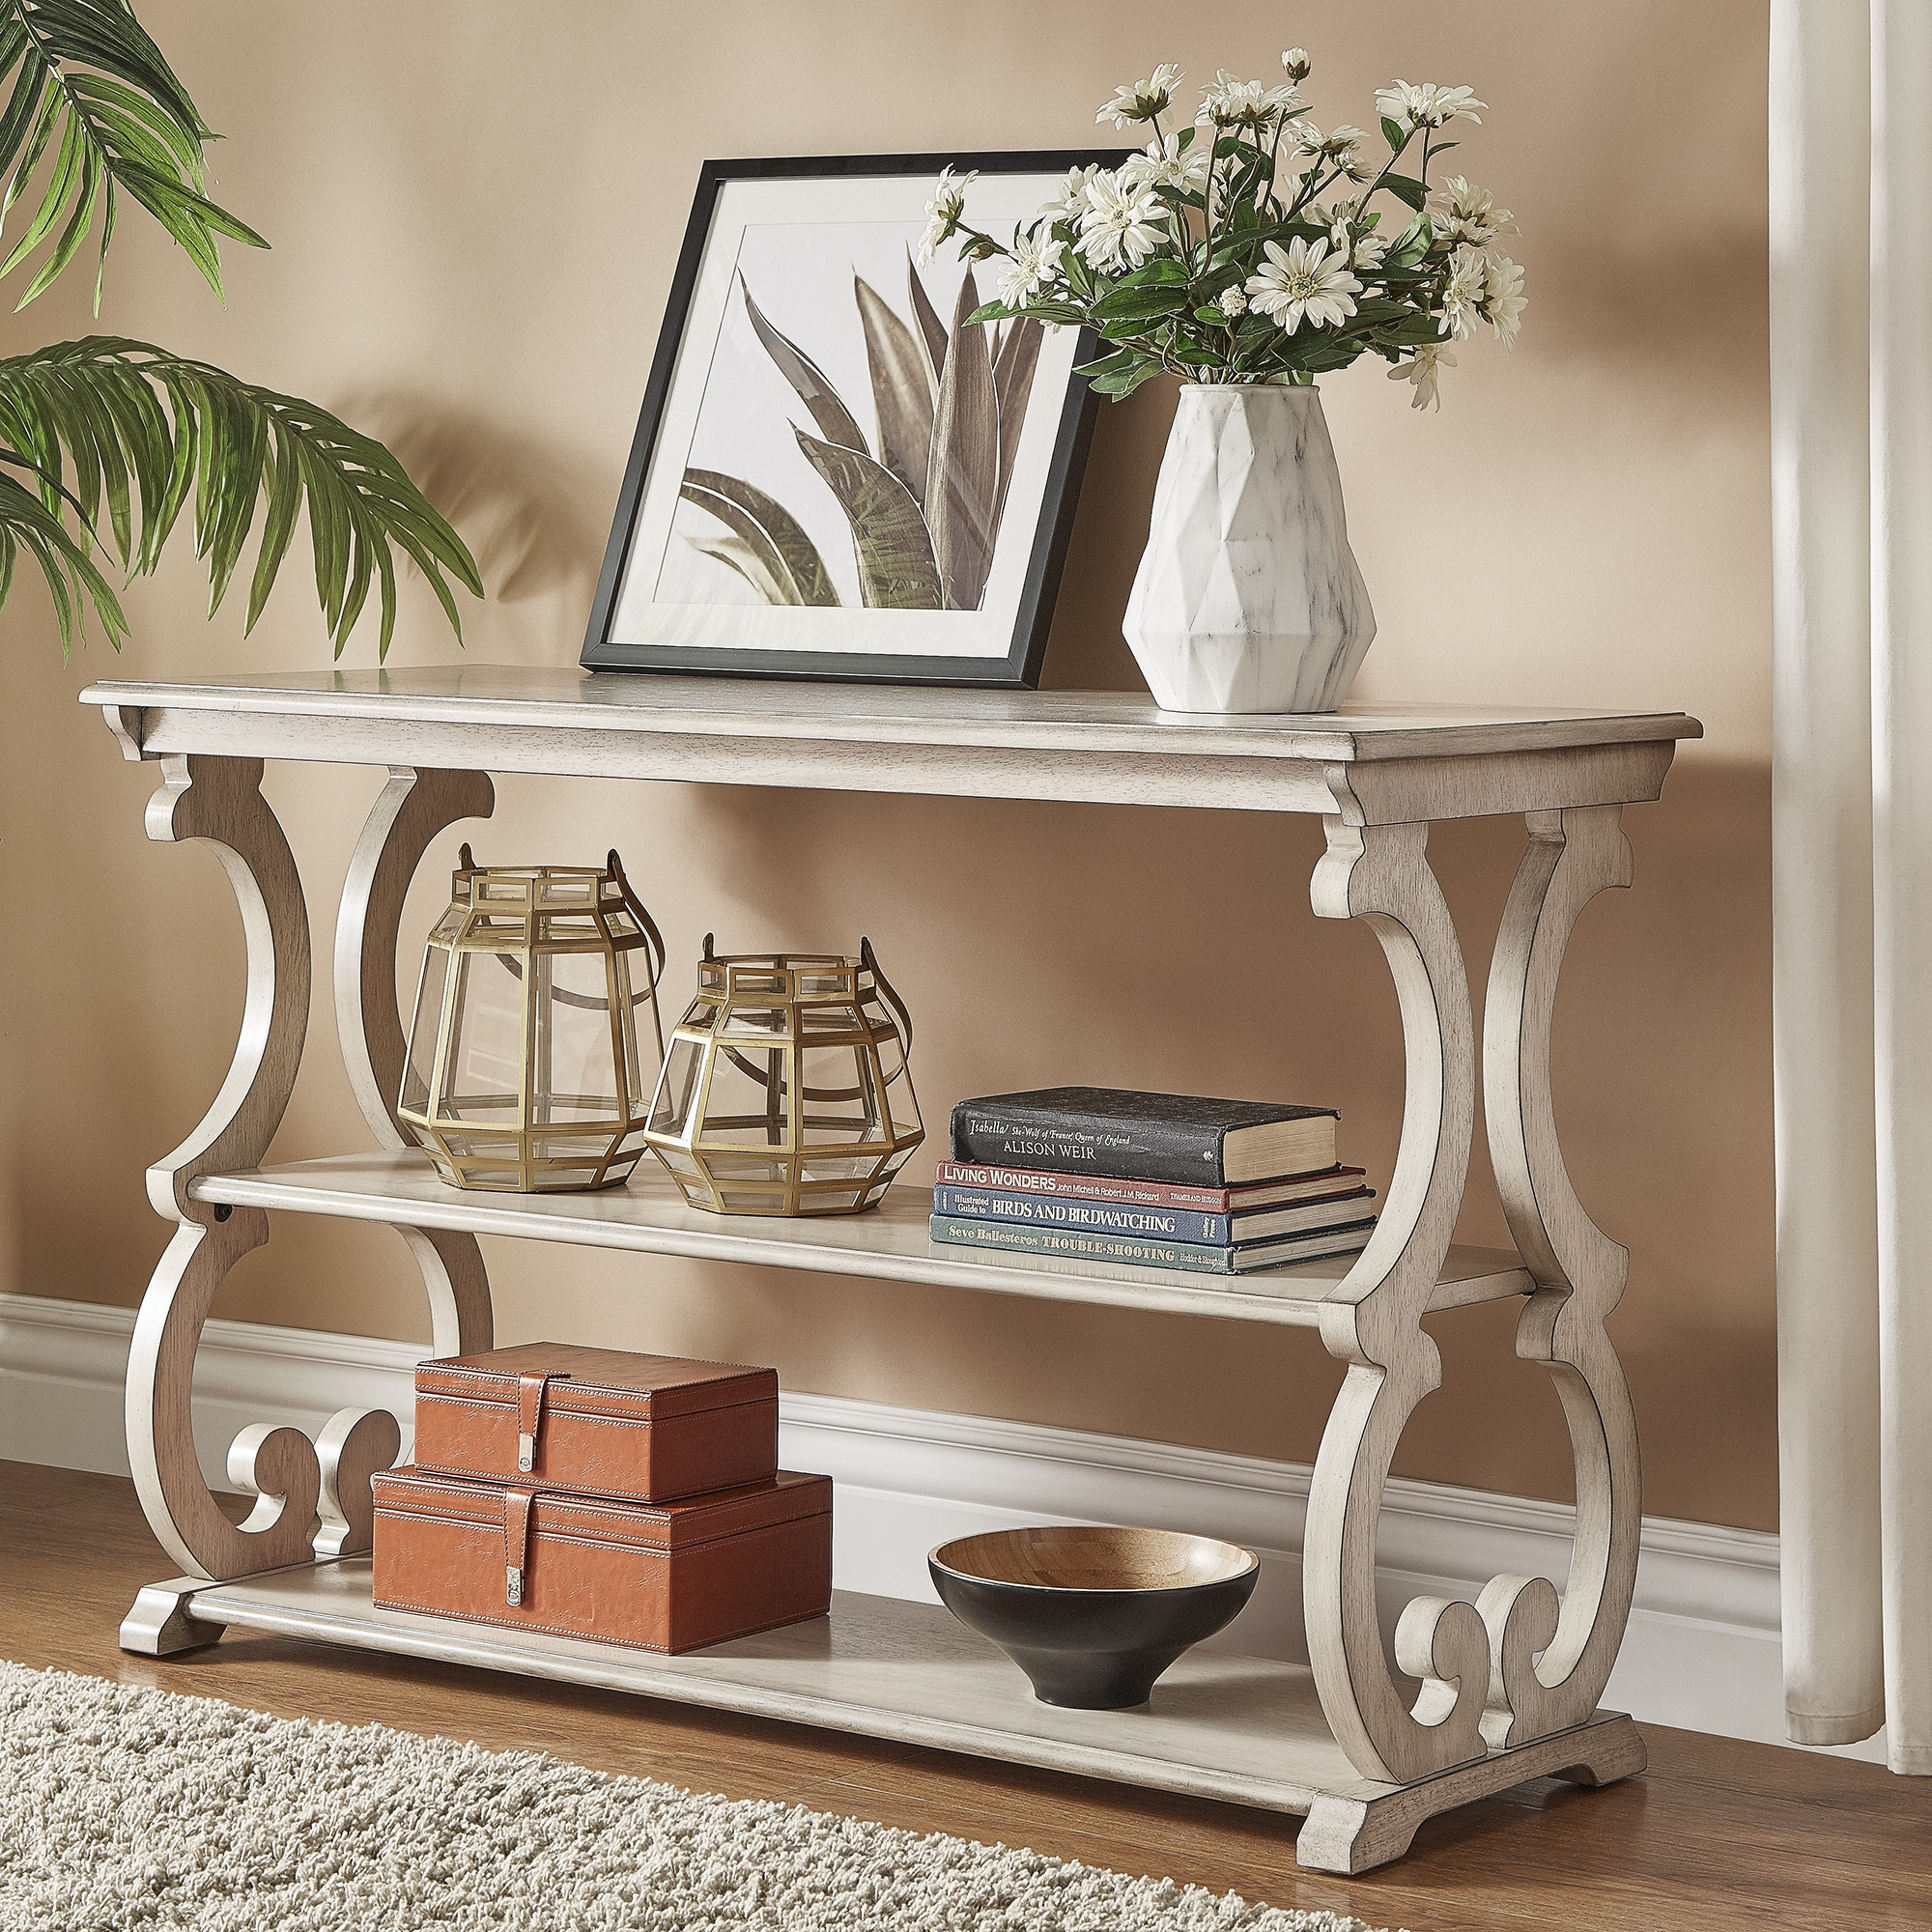 Lorraine Wood Scroll Tv Stand Sofa Table By Inspire Q Clic On Free Shipping Today 14139014